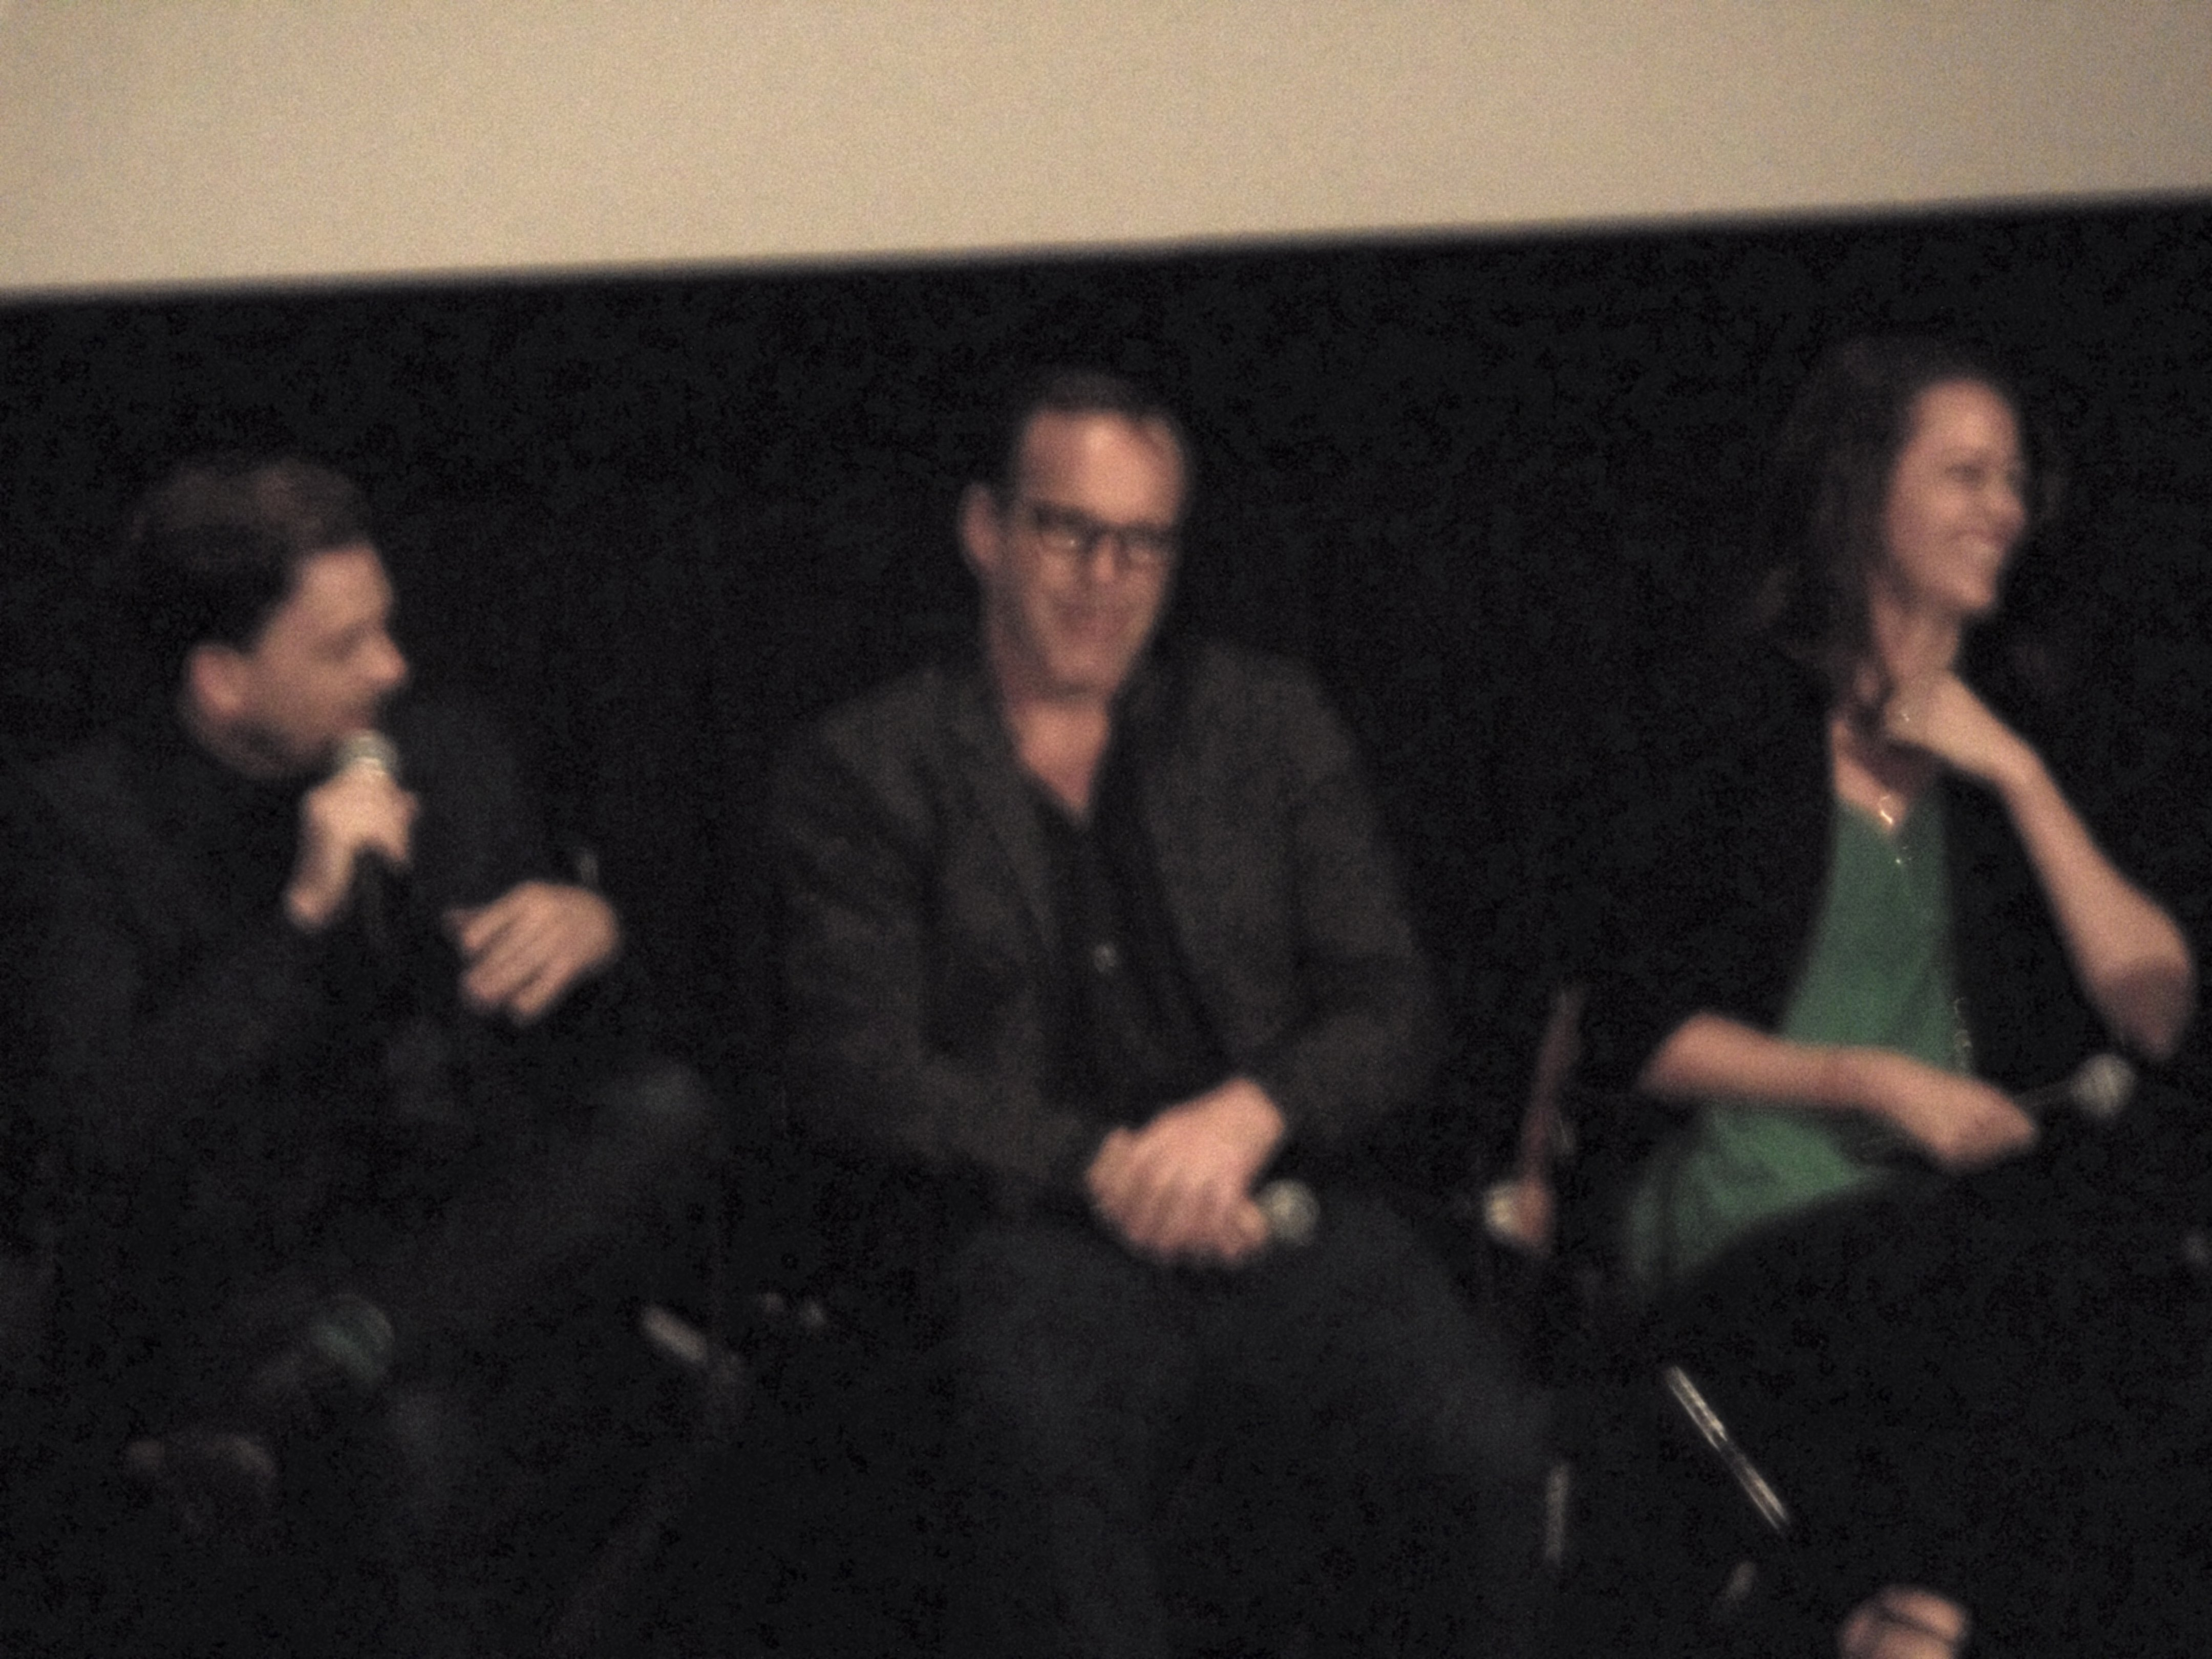 Tom Lenk, Clark Gregg, Amy Acker, Much Ado About Nothing